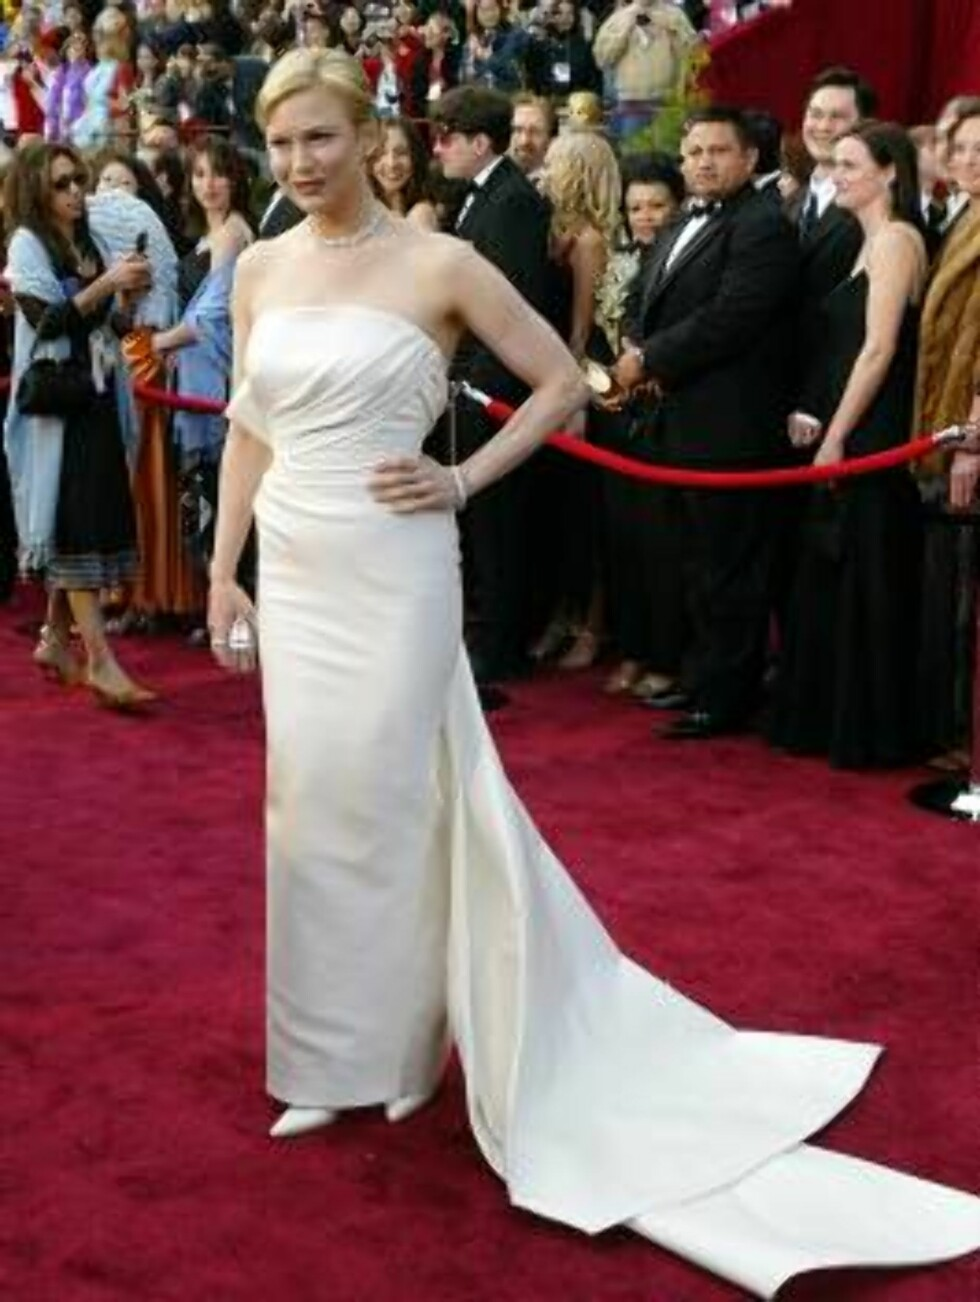 """HOLLYWOOD, CA - FEBRUARY 29:  Actress Renee Zellweger, nominated for Best Actress in a Supporting Role for """"Cold Mountain"""" attends the 76th Annual Academy Awards at the Kodak Theater on February 29, 2004 in Hollywood, California.  (Photo by Carlo Allegri/ Foto: All Over Press"""